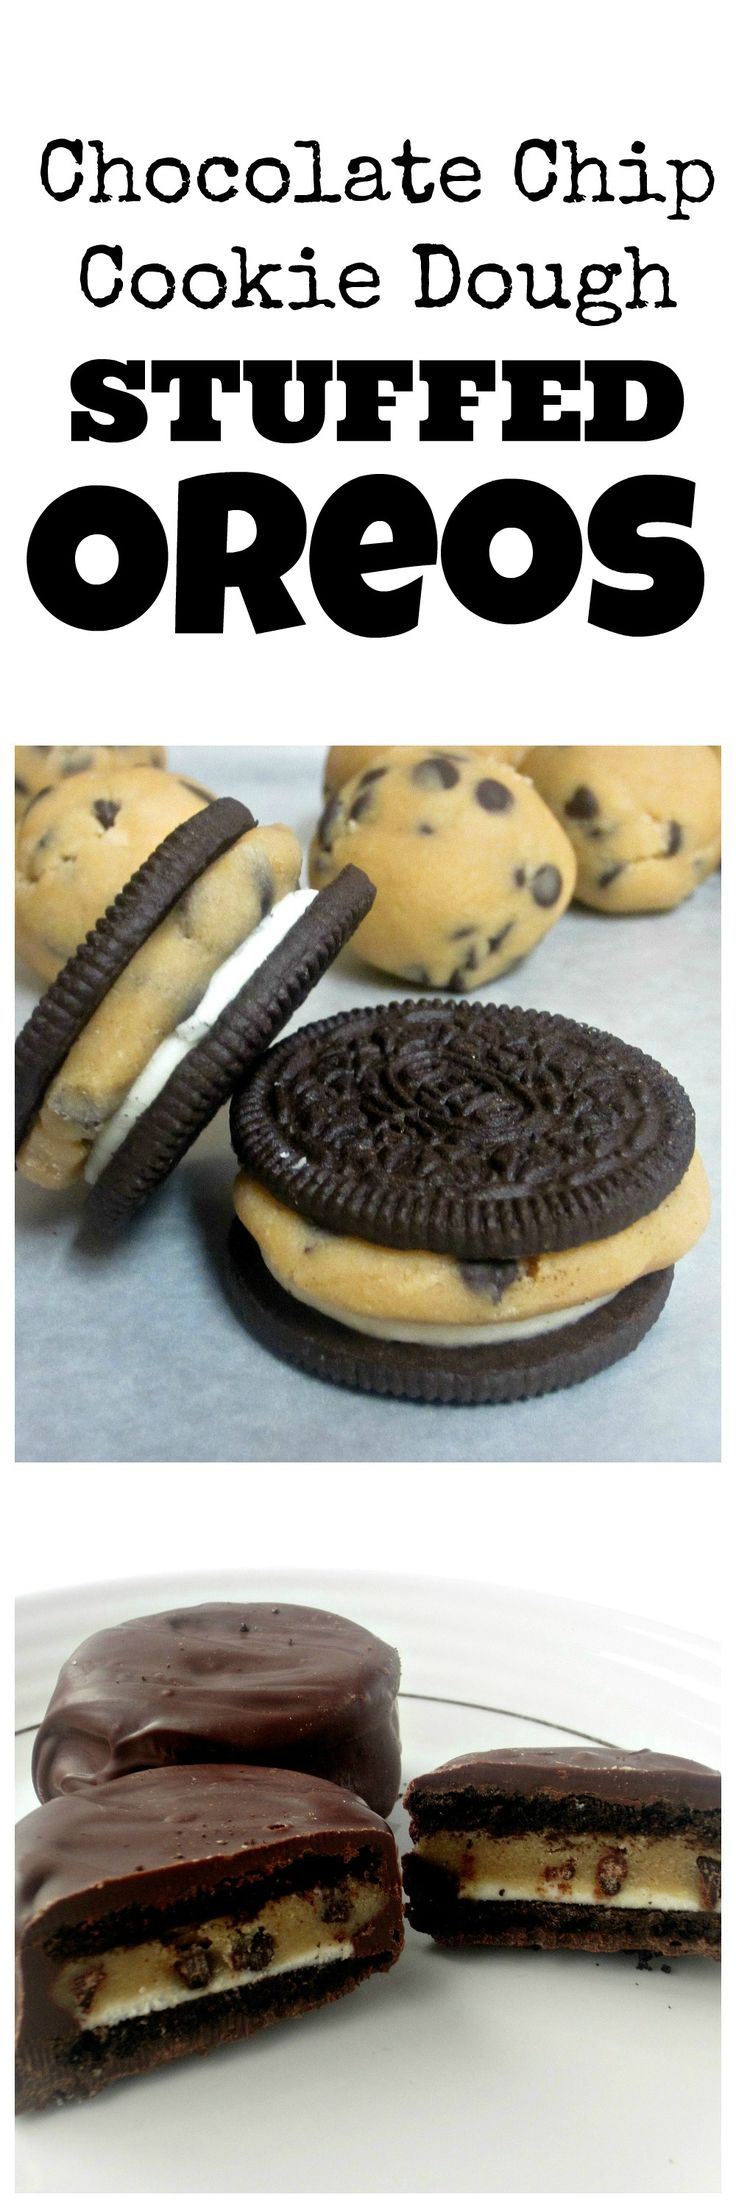 Chocolate Chip Cookie Dough Stuffed Oreos- Most pinned recipe on Love to be in the Kitchen!!